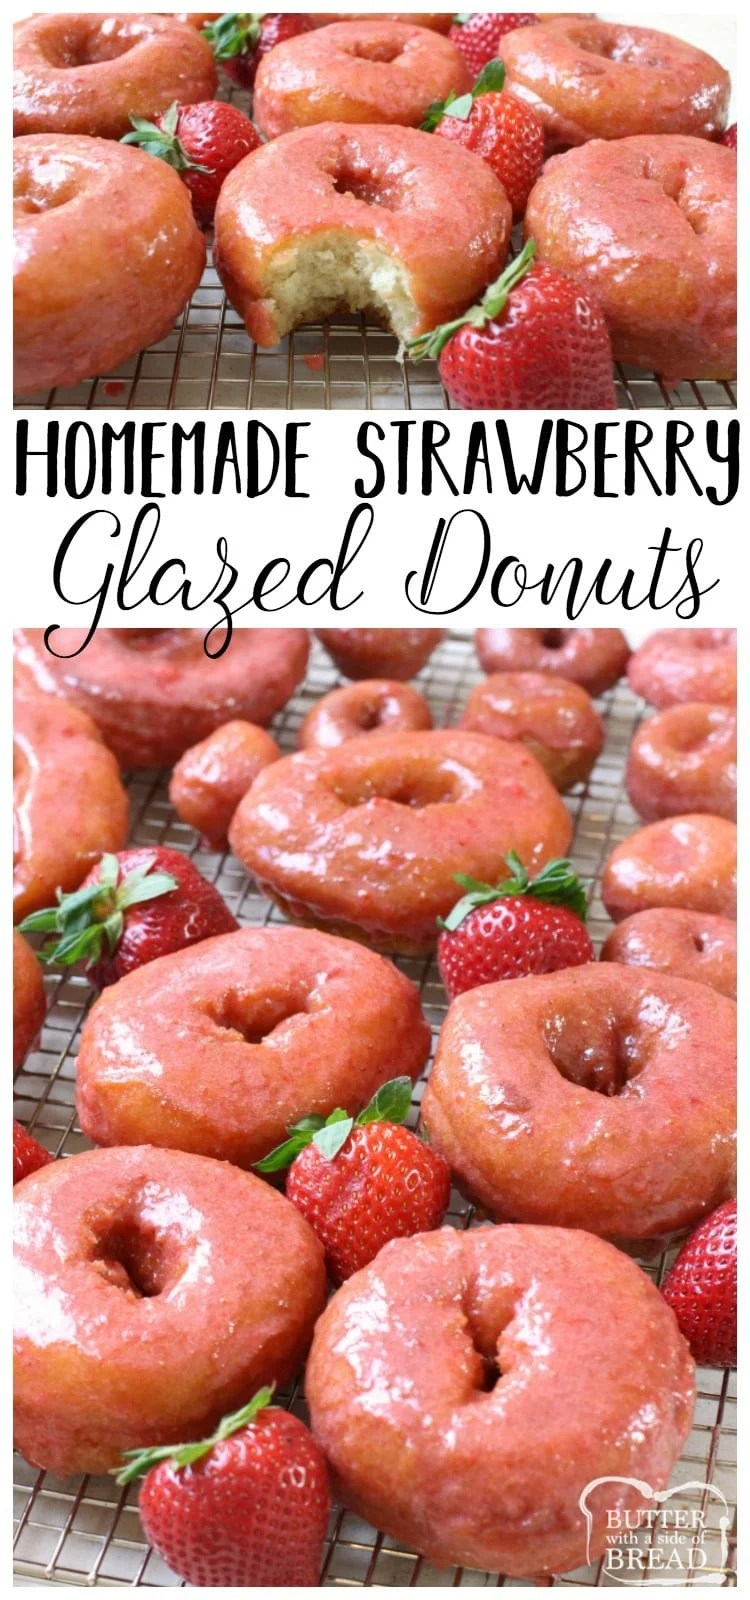 Incredible recipe for homemade Strawberry Glazed Donuts! Done, start to finish in about 30 minutes and OMG they taste SO good! The fresh strawberry glaze is amazing!